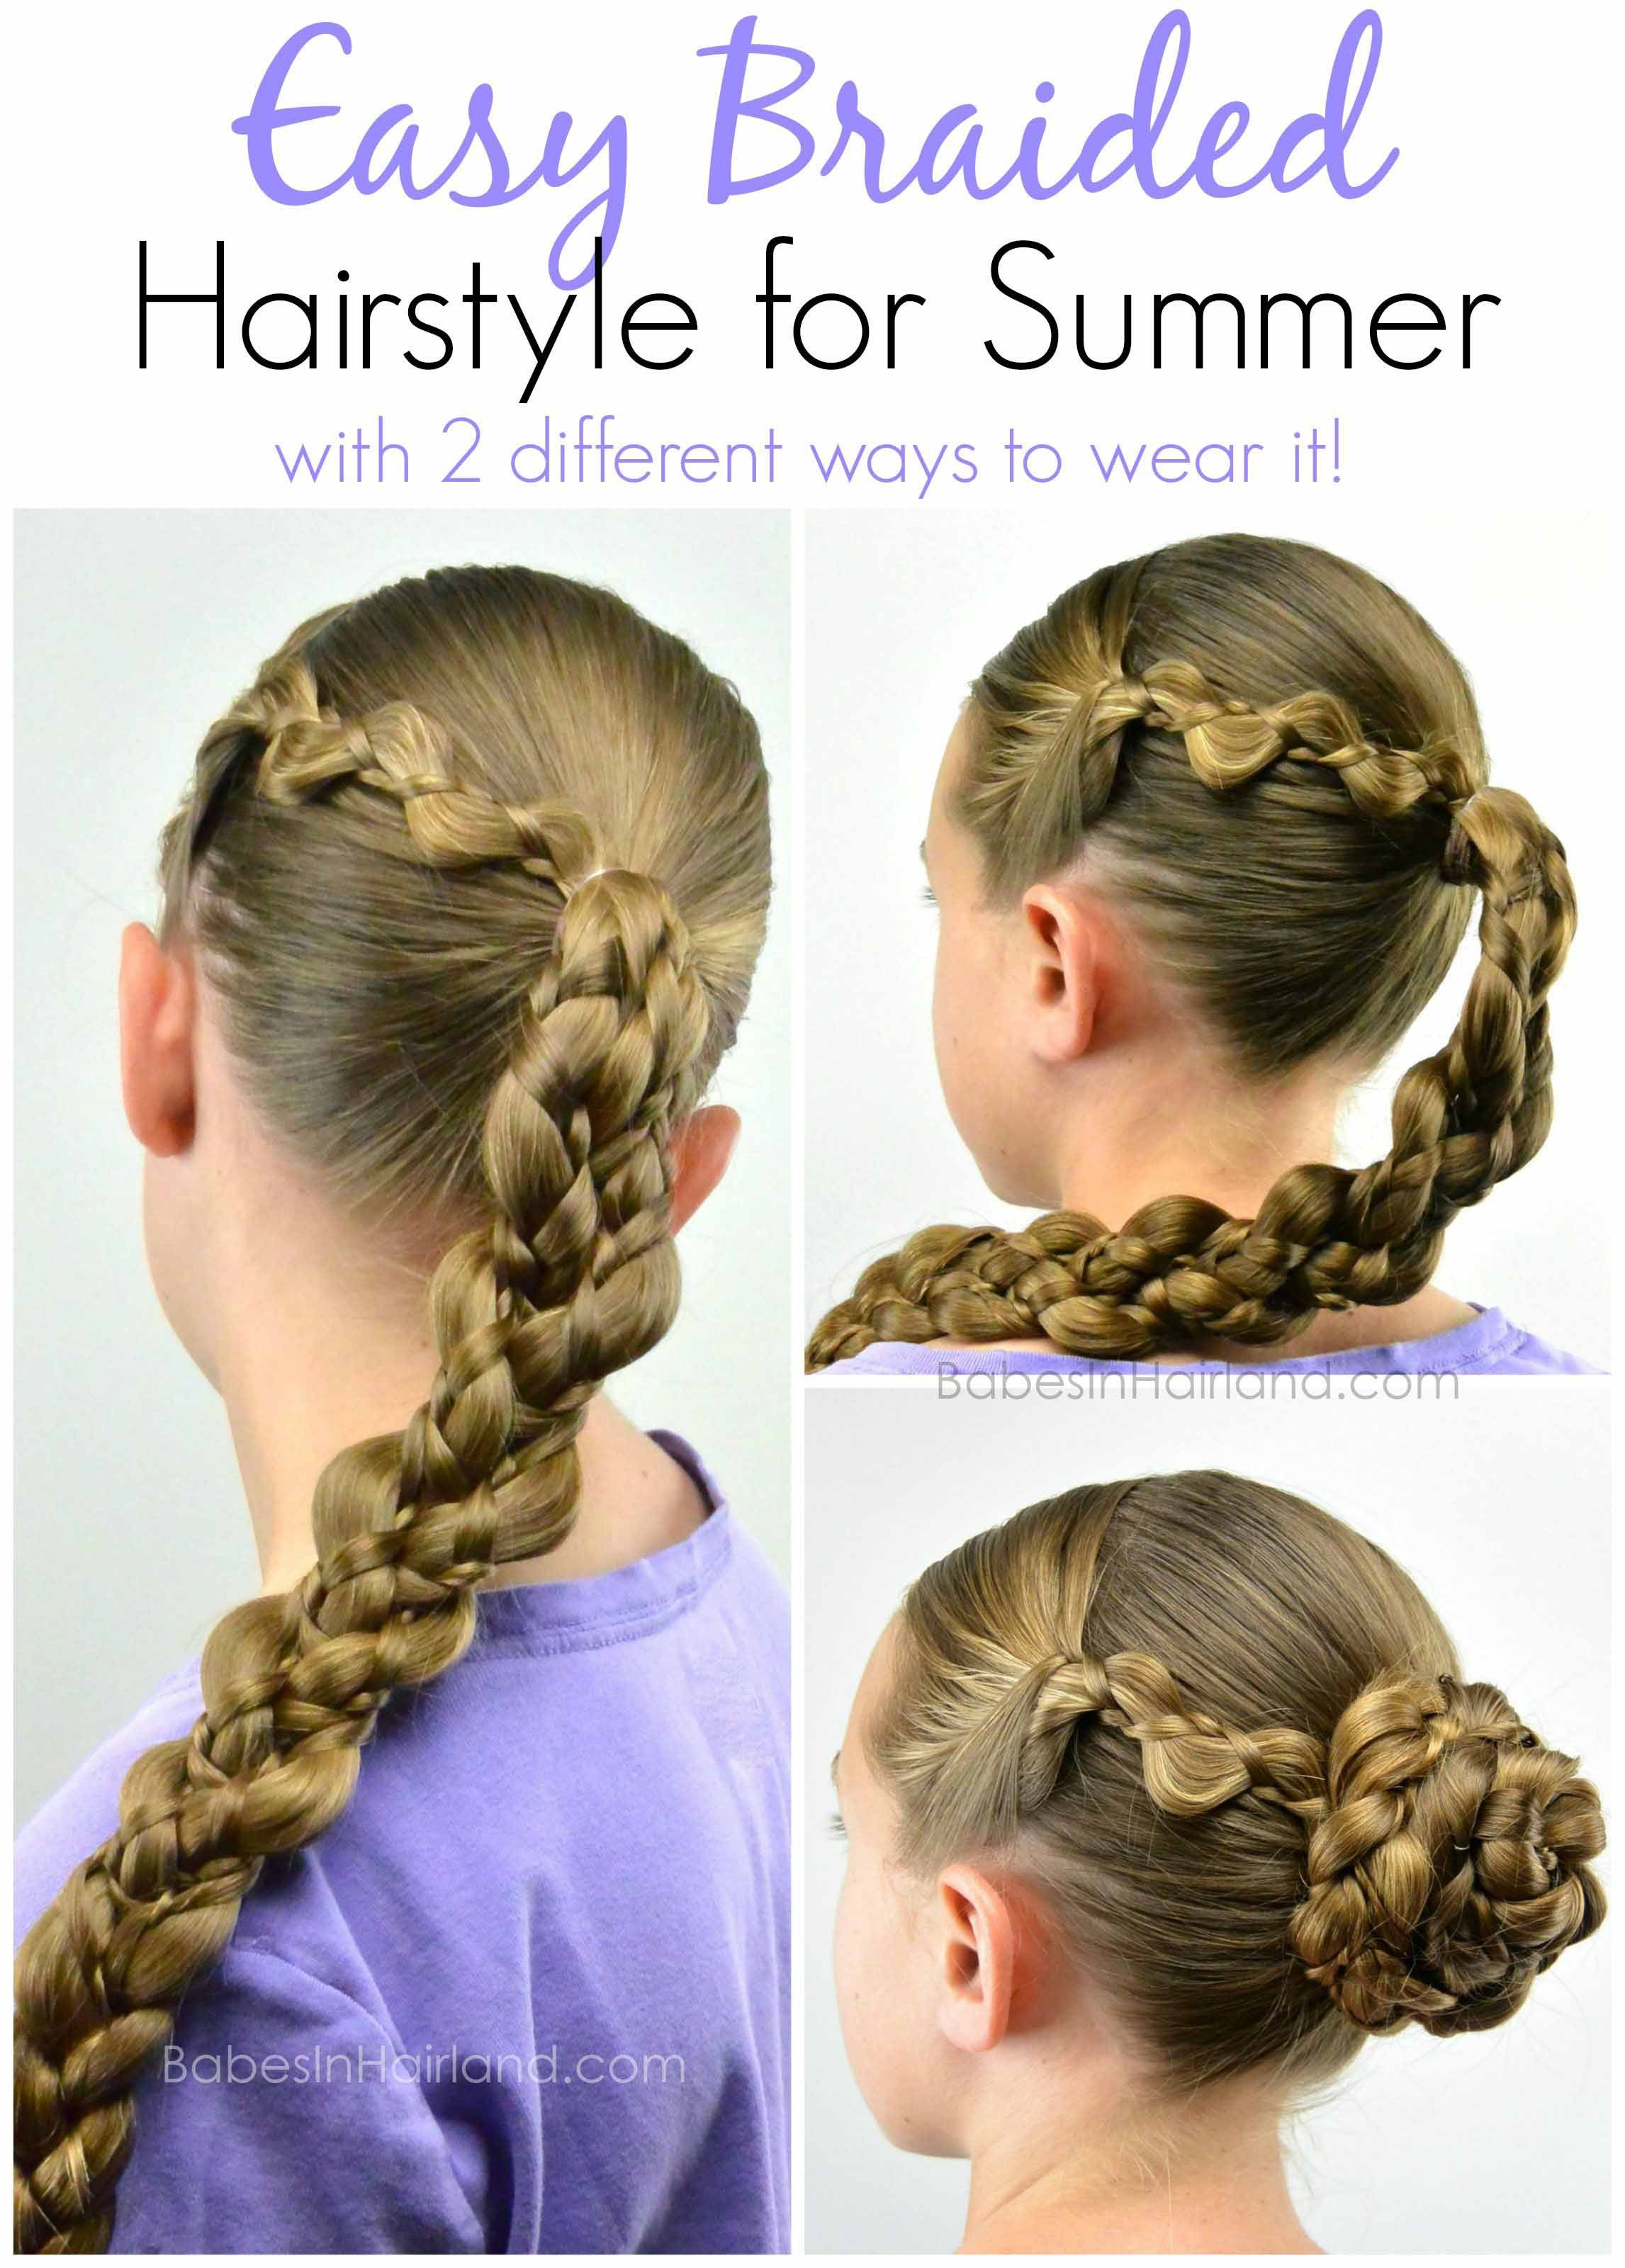 Easy Braided Hairstyle for Summer Pinterest